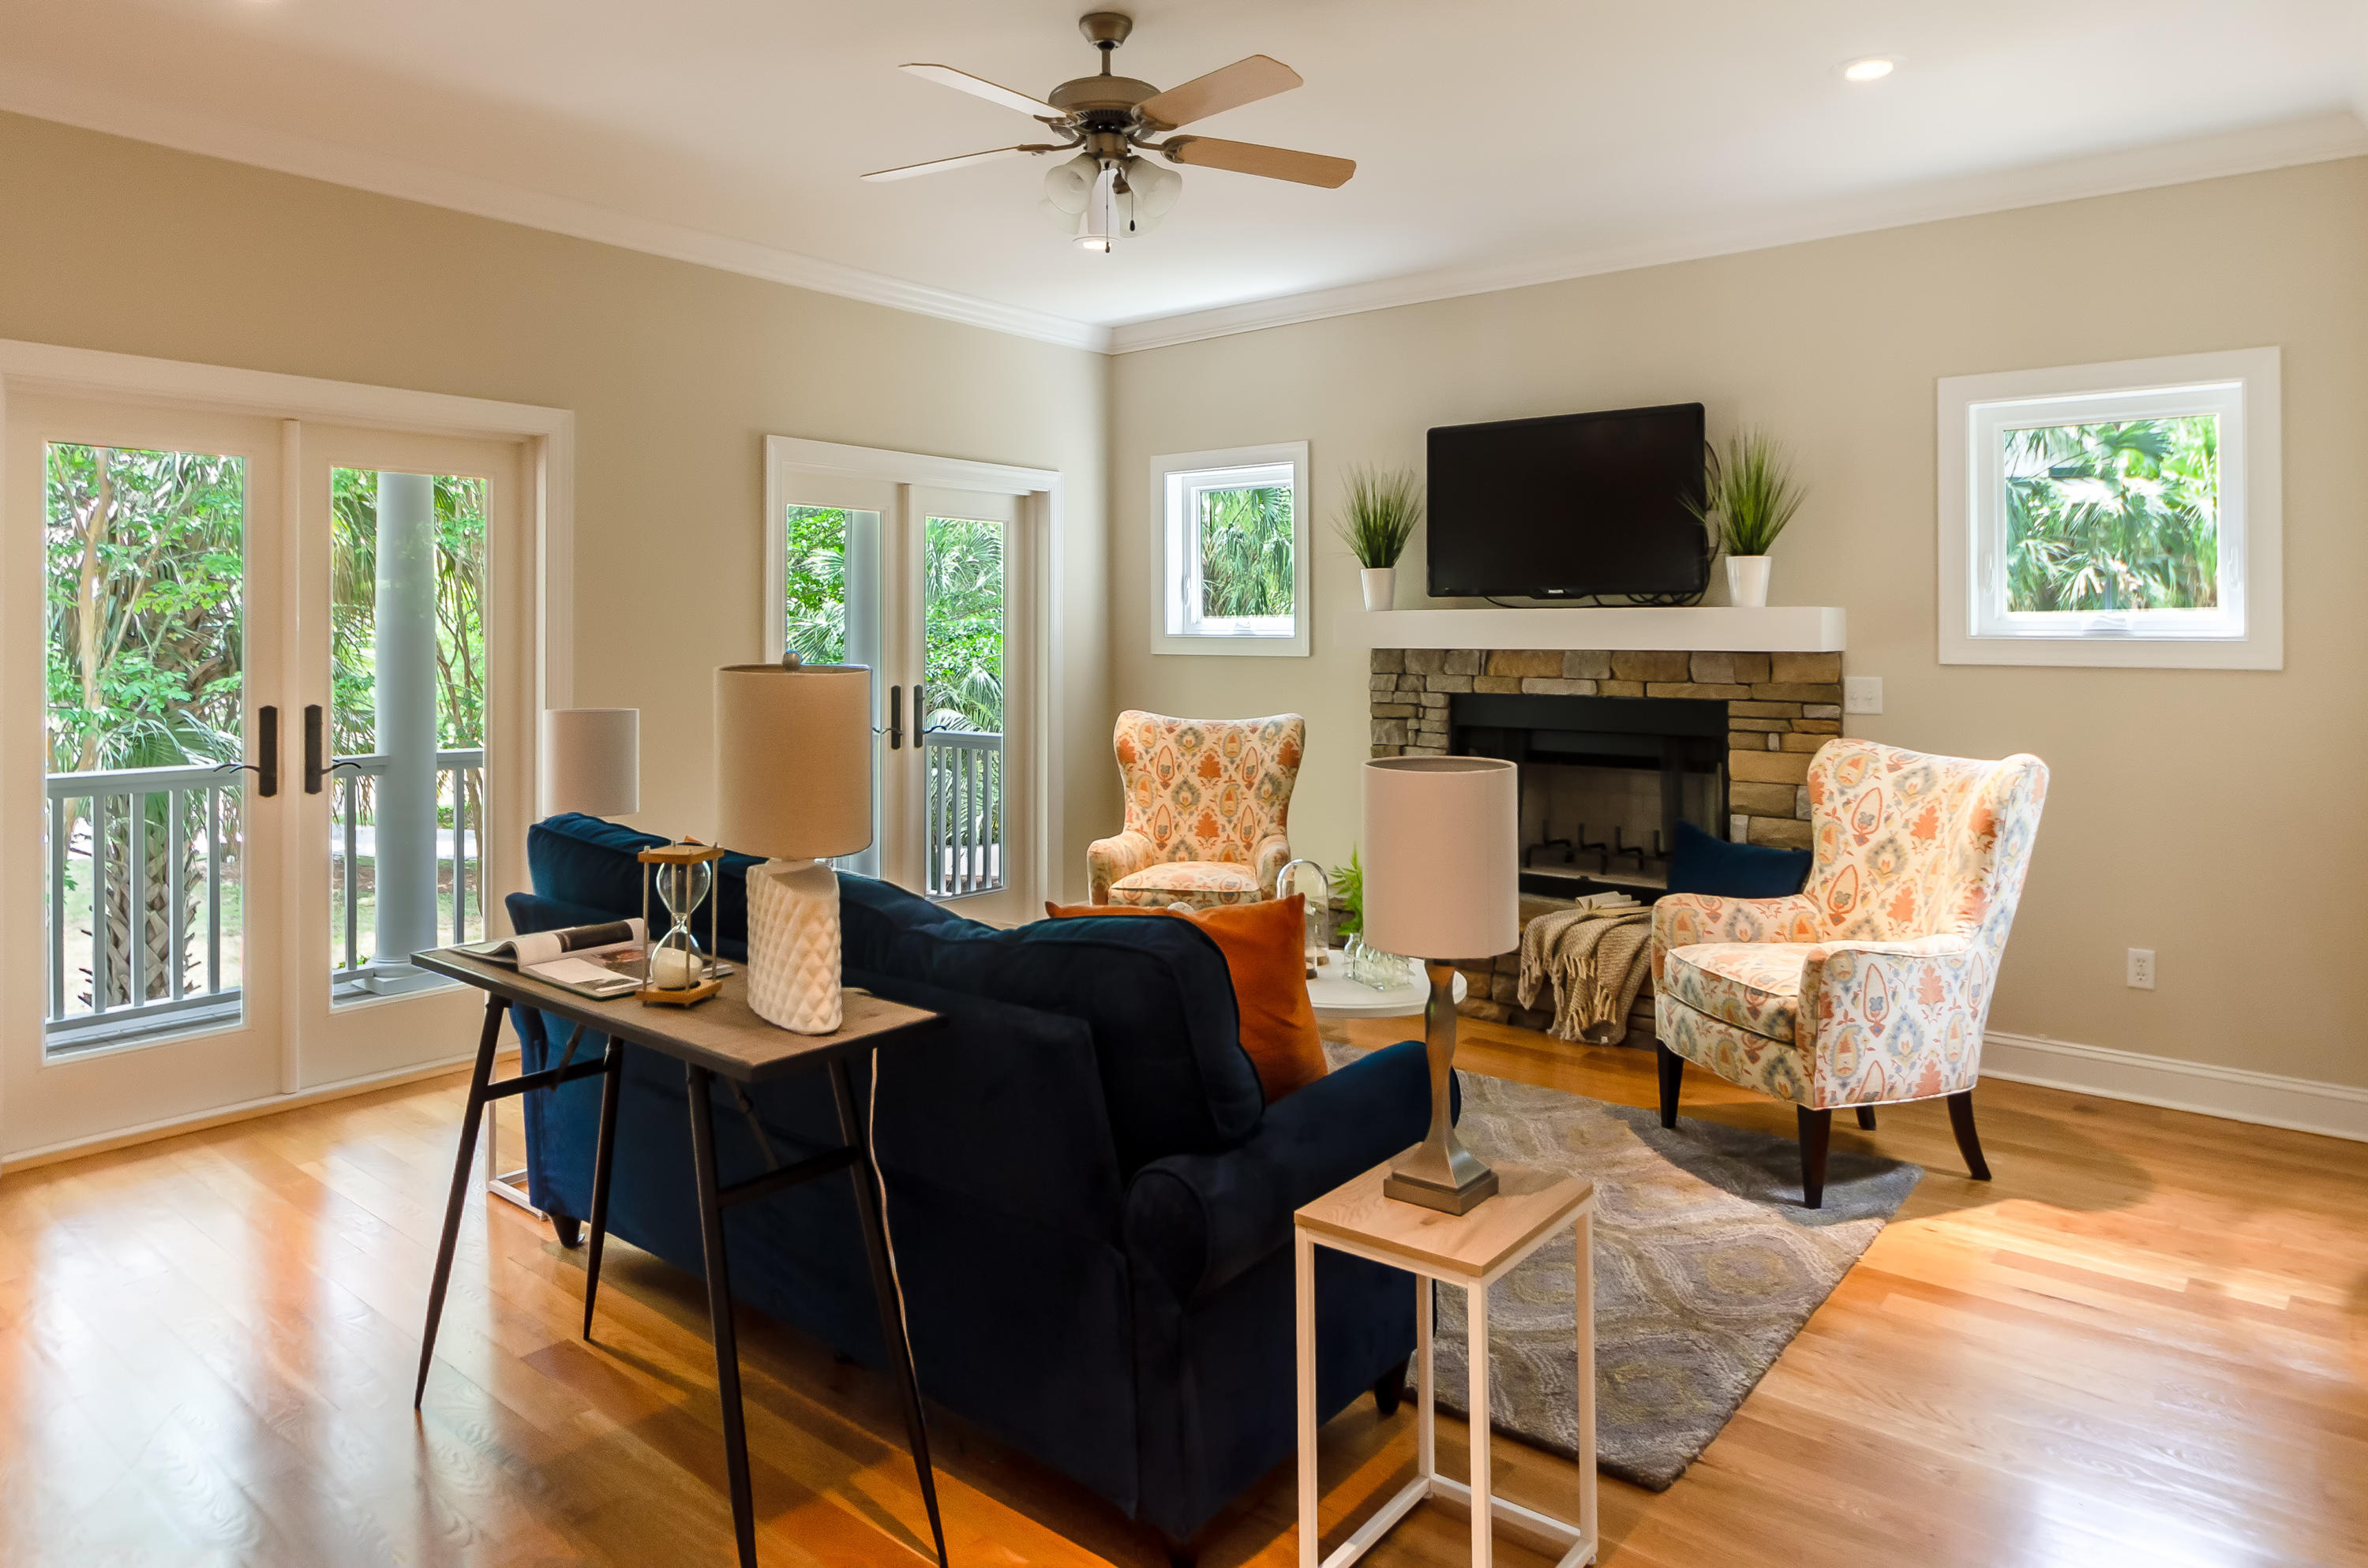 The Village at Seabrook Homes For Sale - 3076 Seabrook Village, Seabrook Island, SC - 22